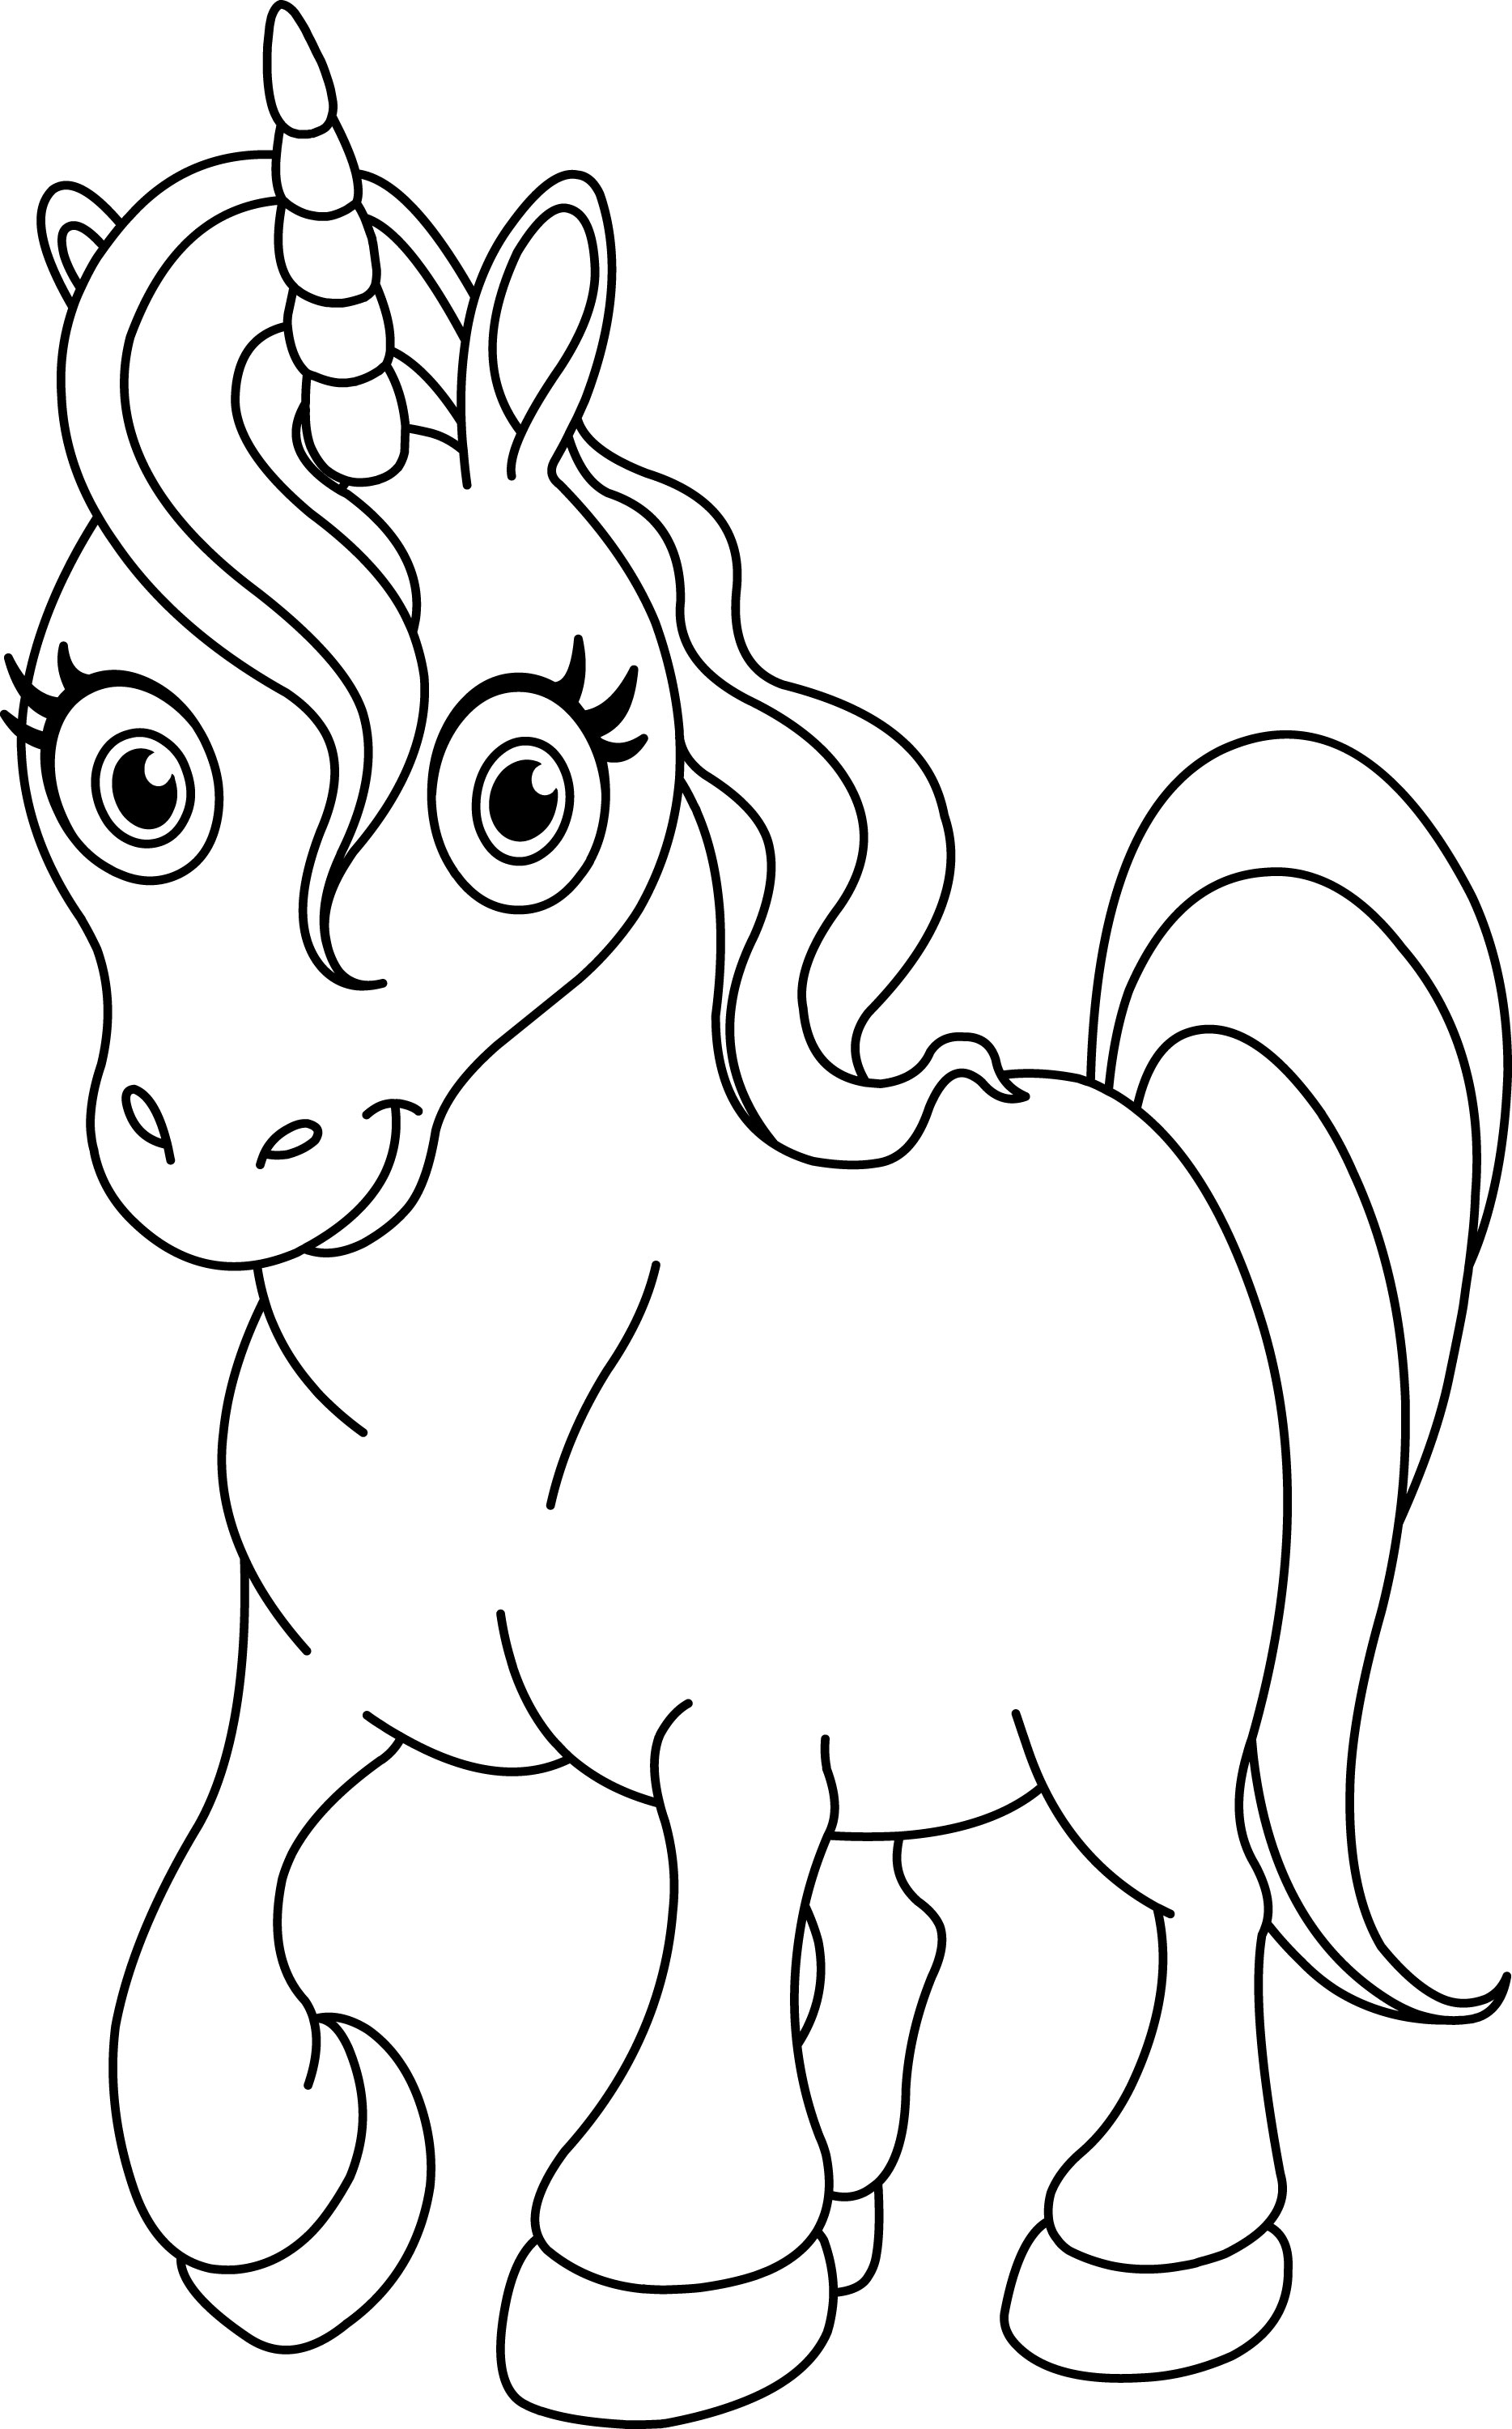 unicorn coloring to print unicorn coloring pages to download and print for free print coloring to unicorn